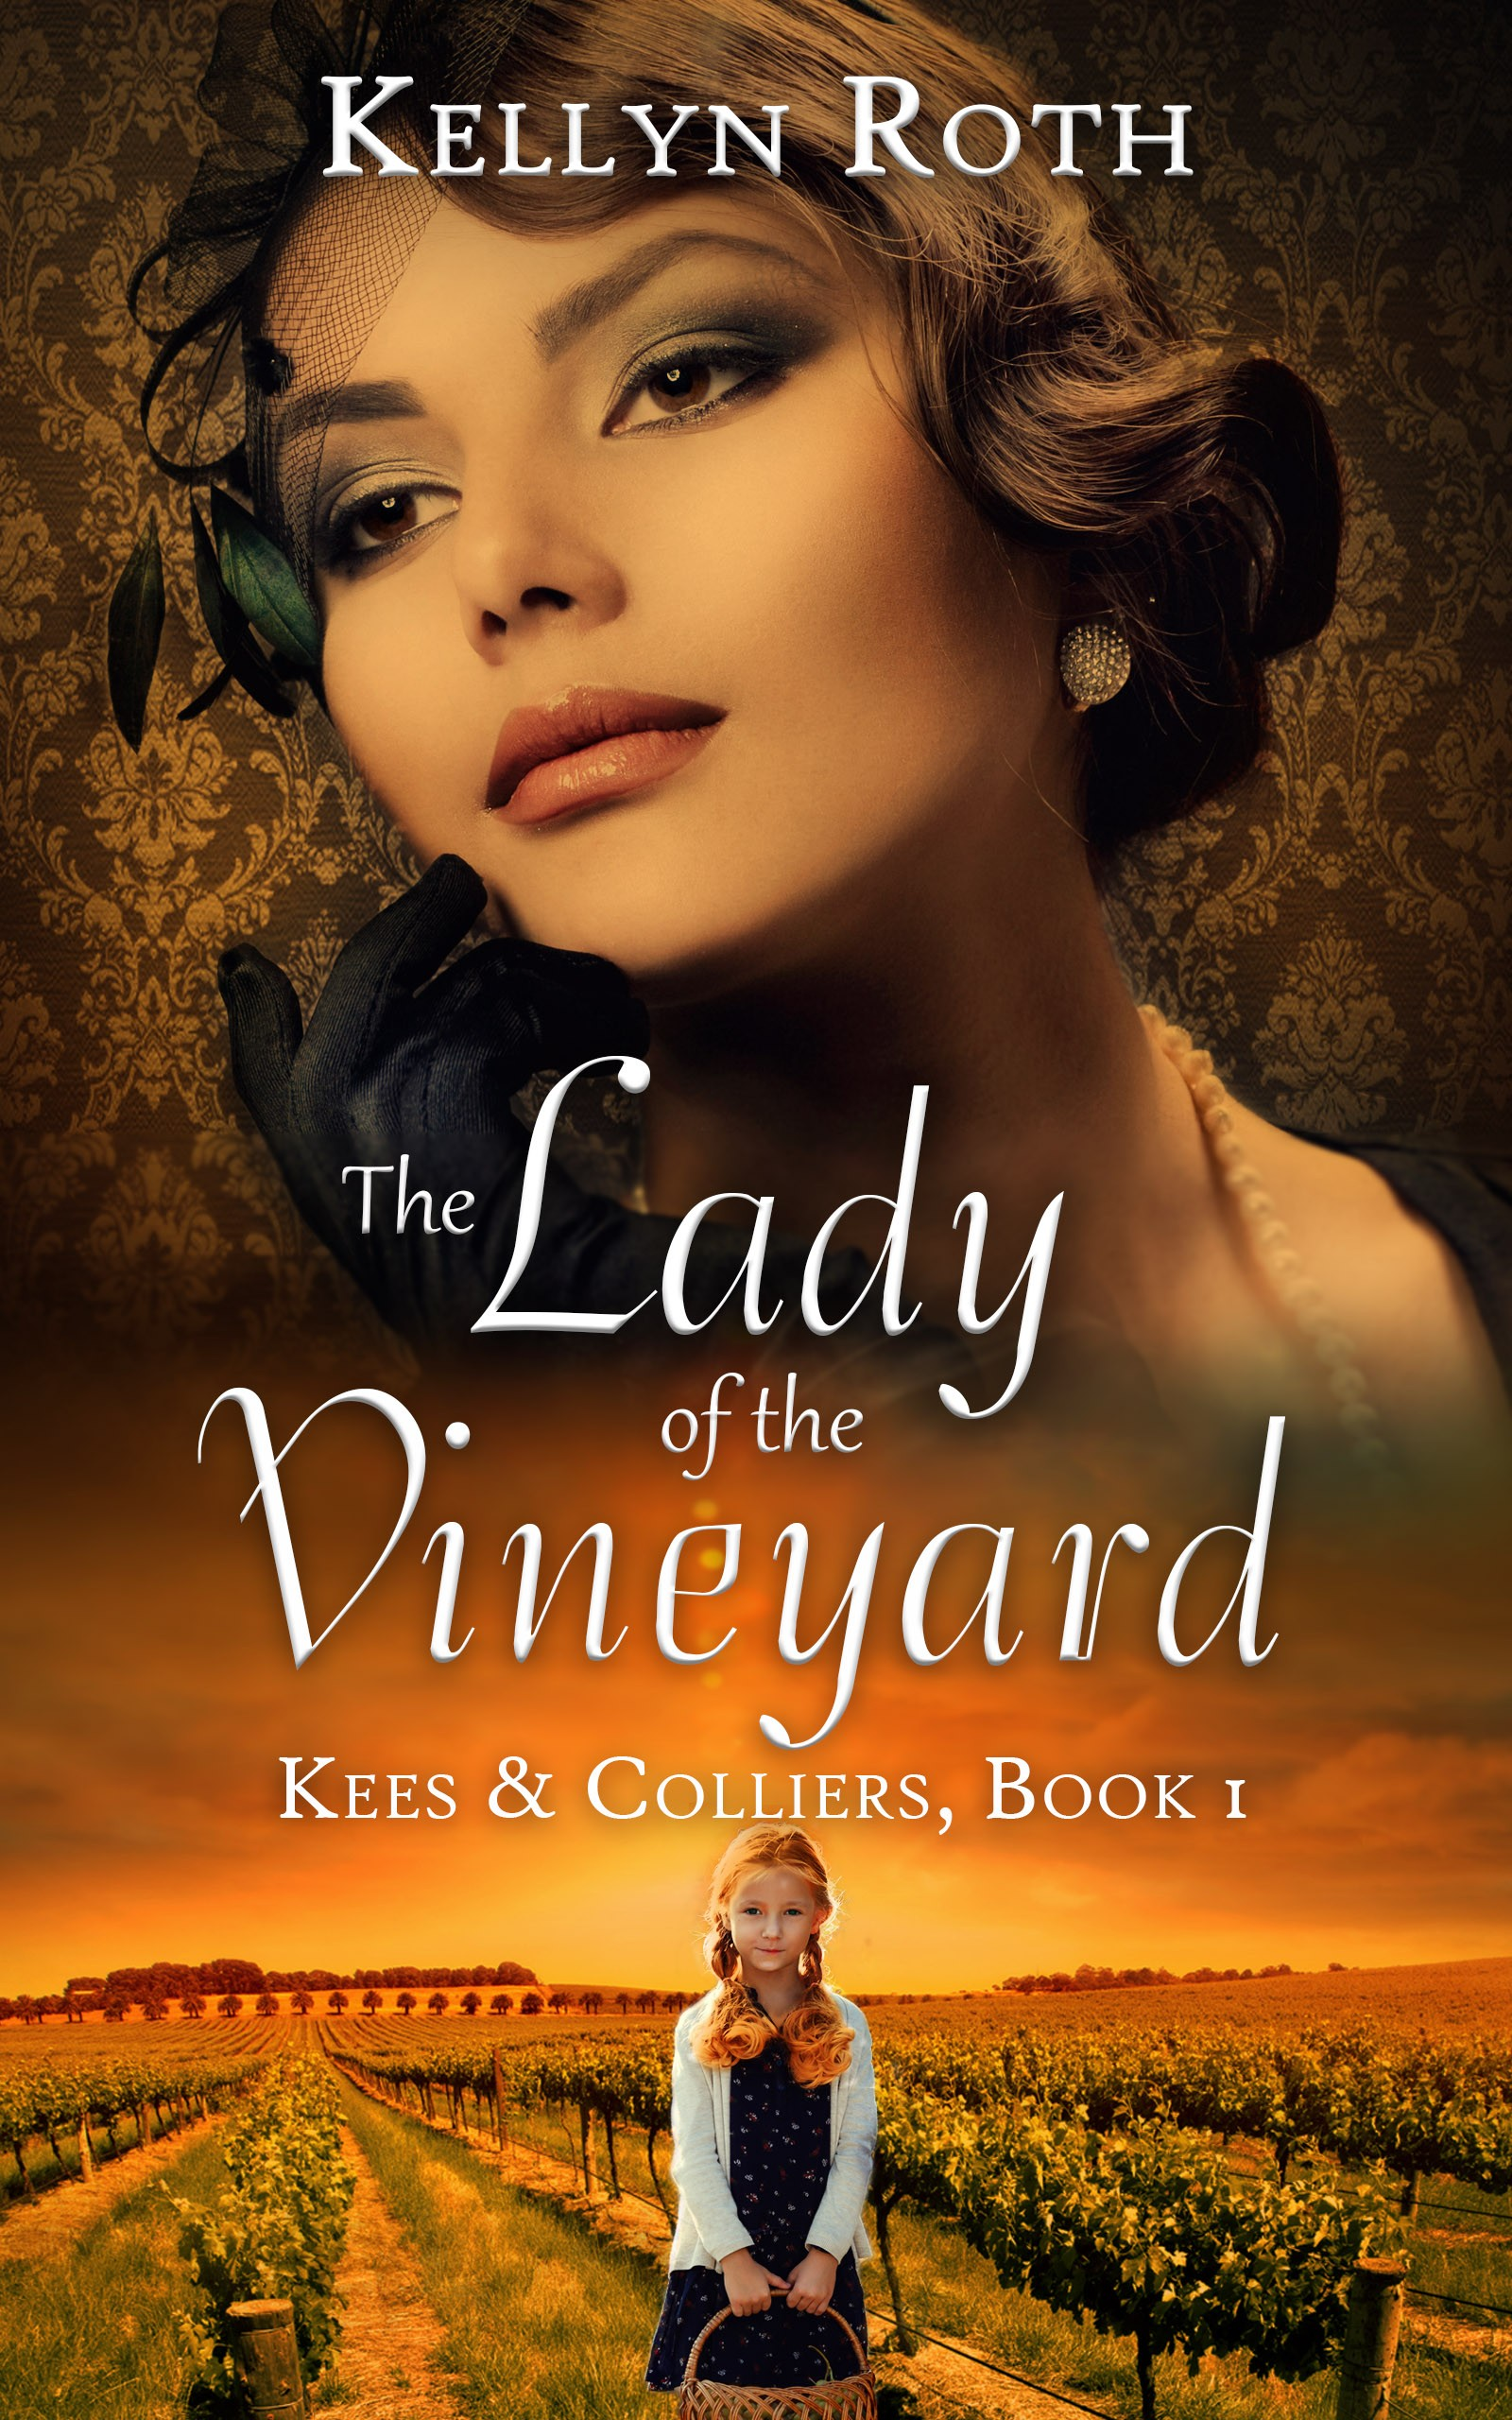 The Lady of the Vineyard